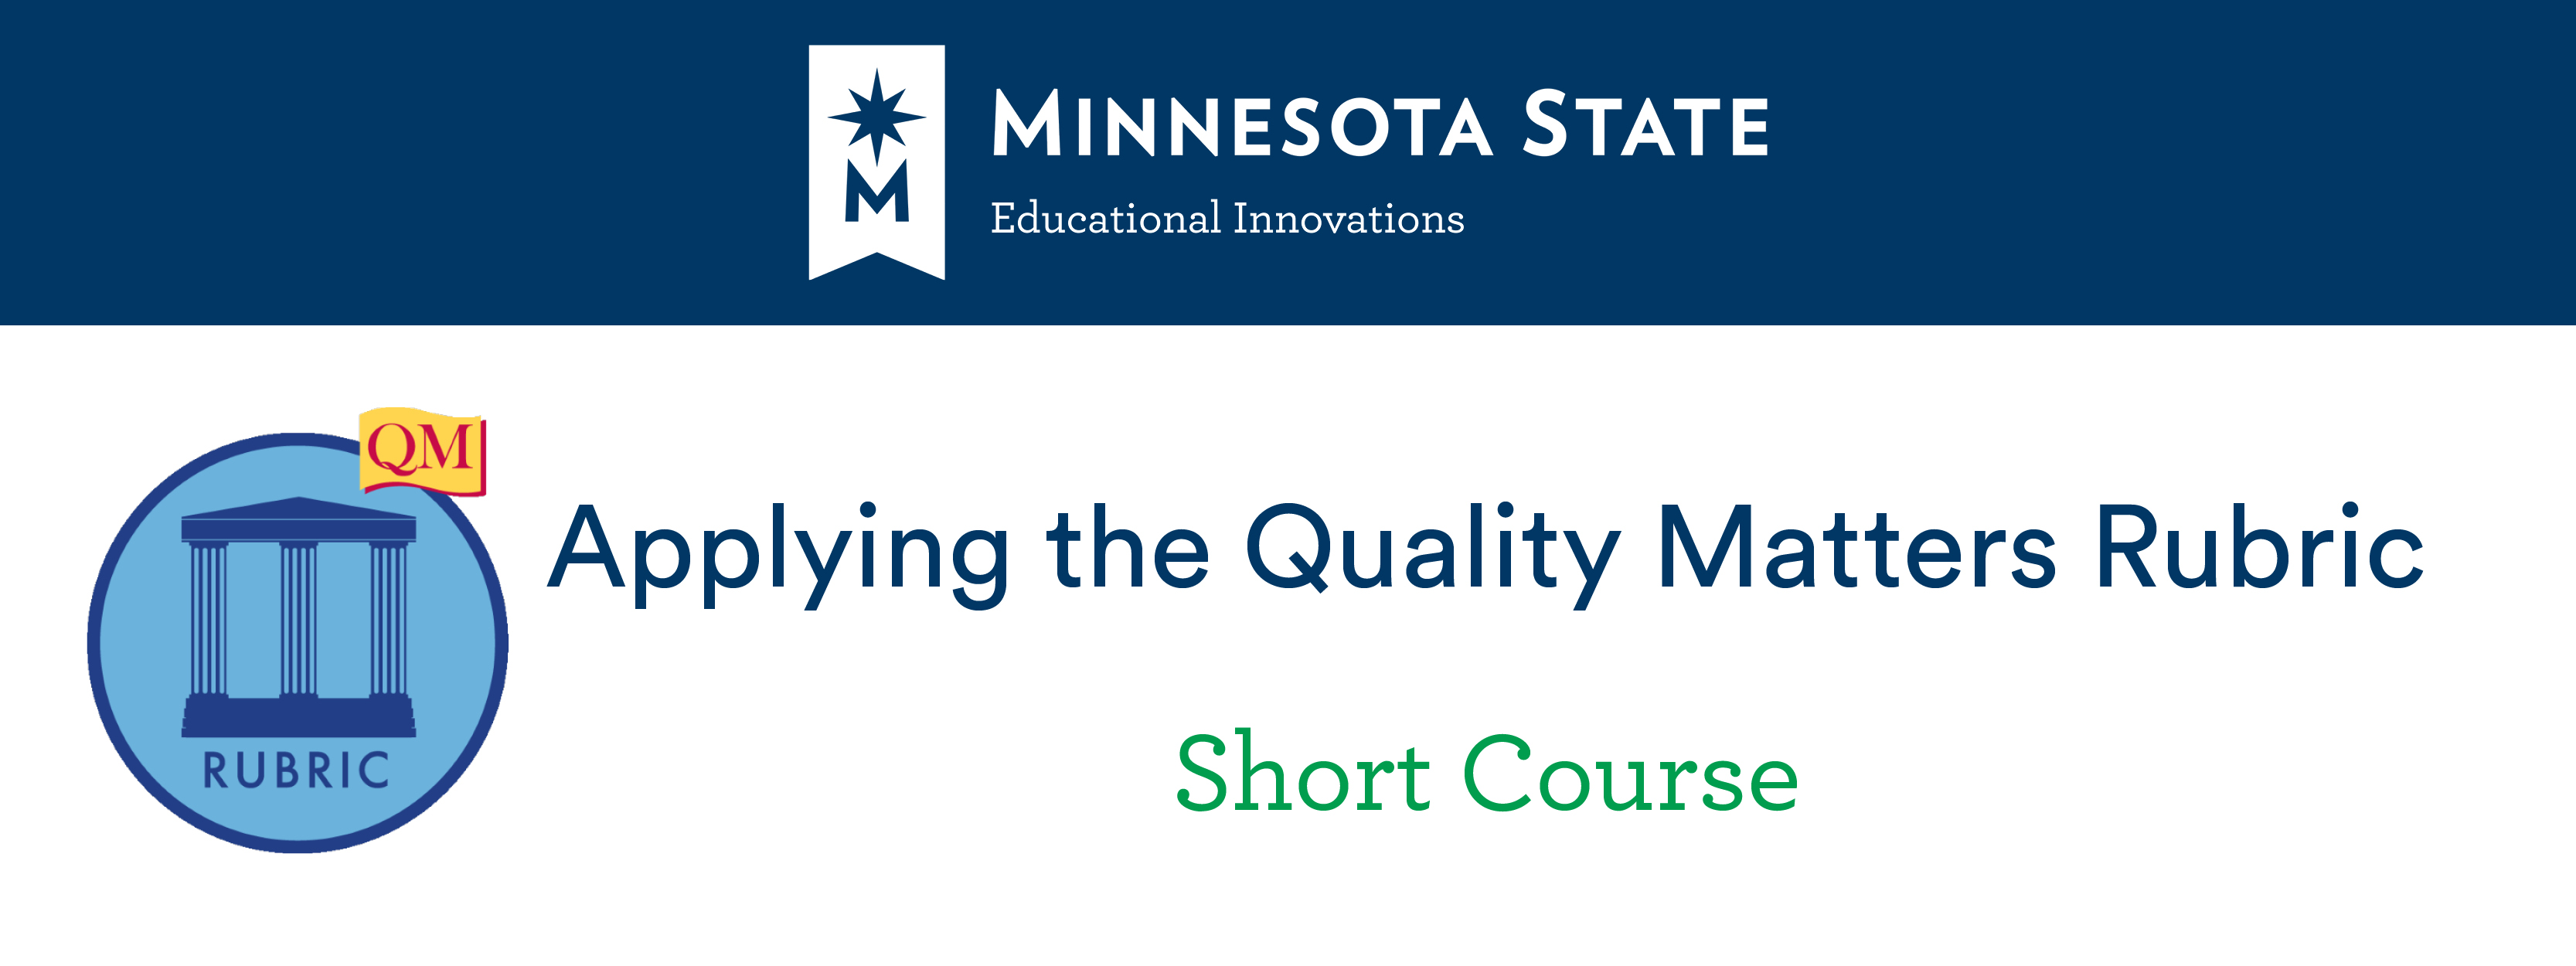 Applying the Quality Matters Rubric